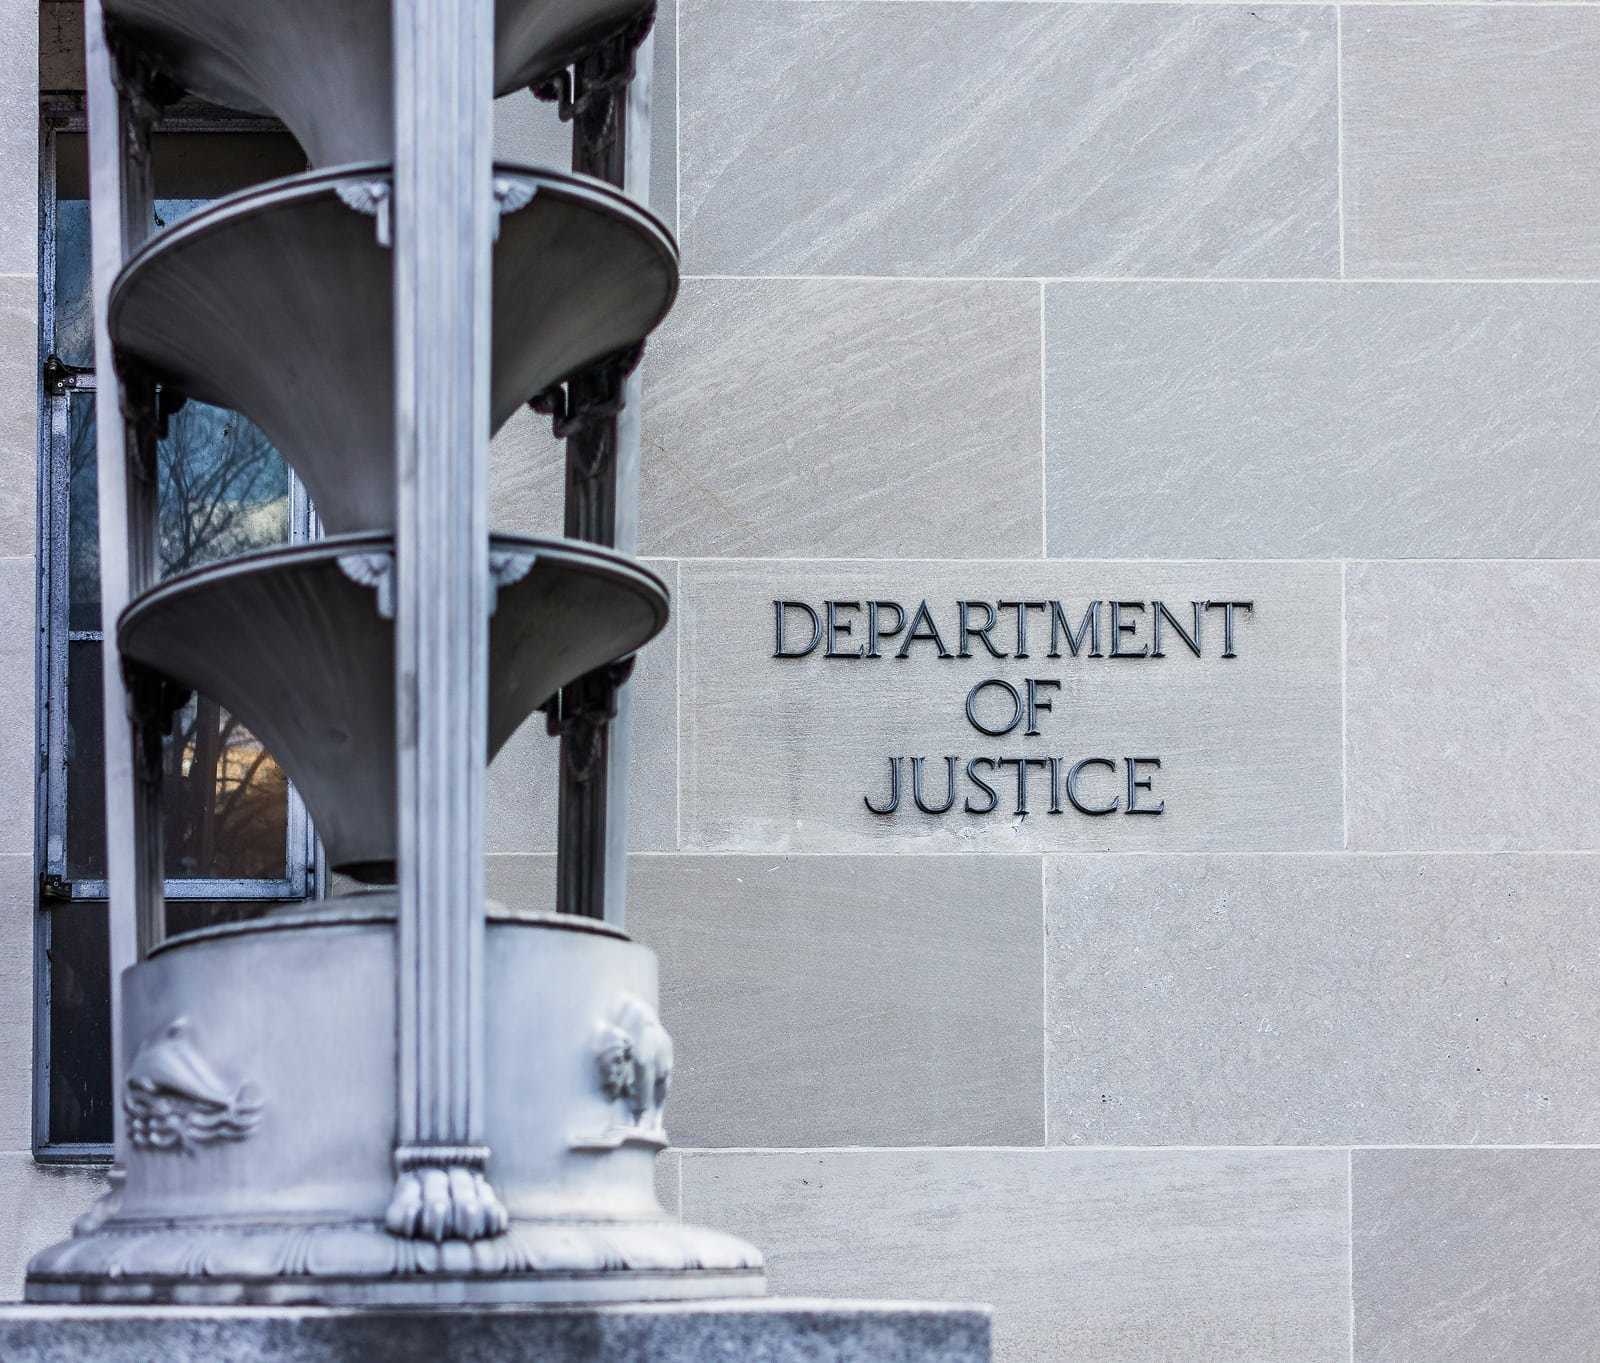 Ohio News: Eleven people indicted for being in Ohio after having been previously deported and/or convicted of crimes in the U.S.